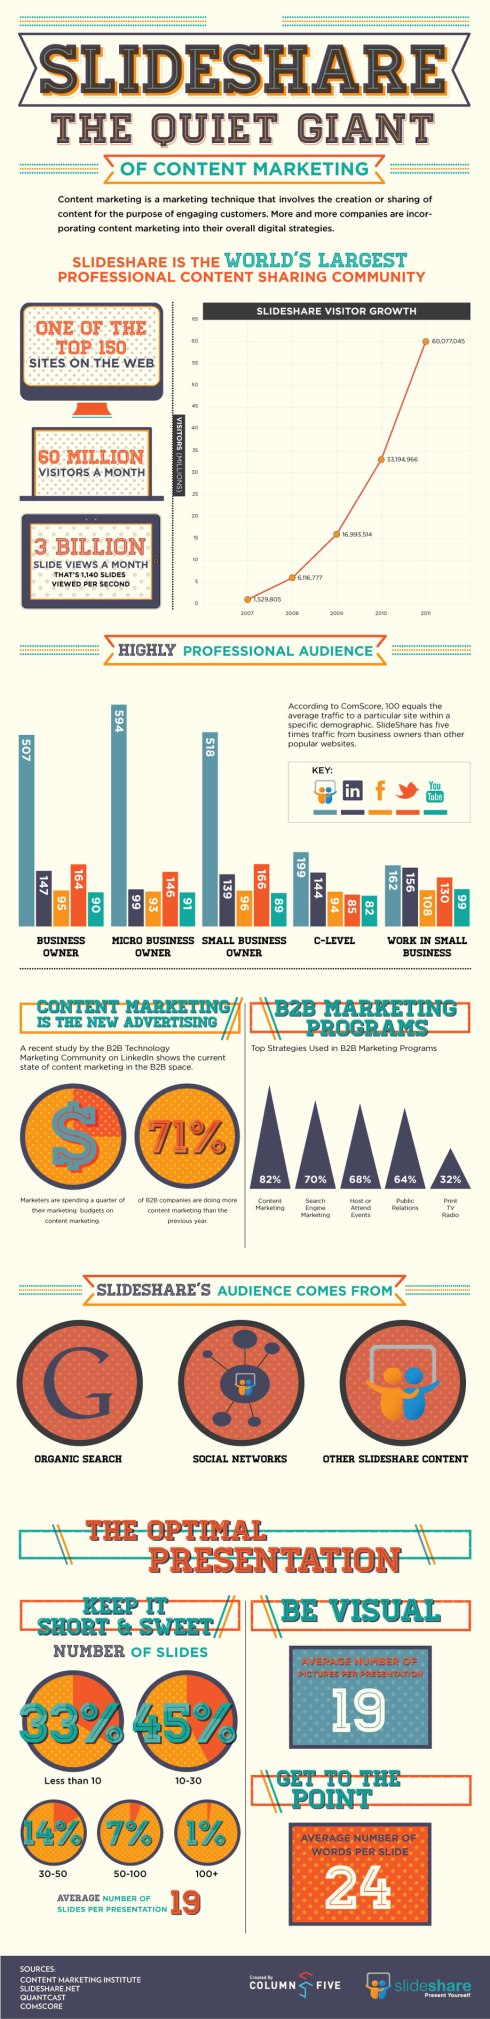 Slideshare Quiet Giant of Content Marketing [INFOGRAPHIC]